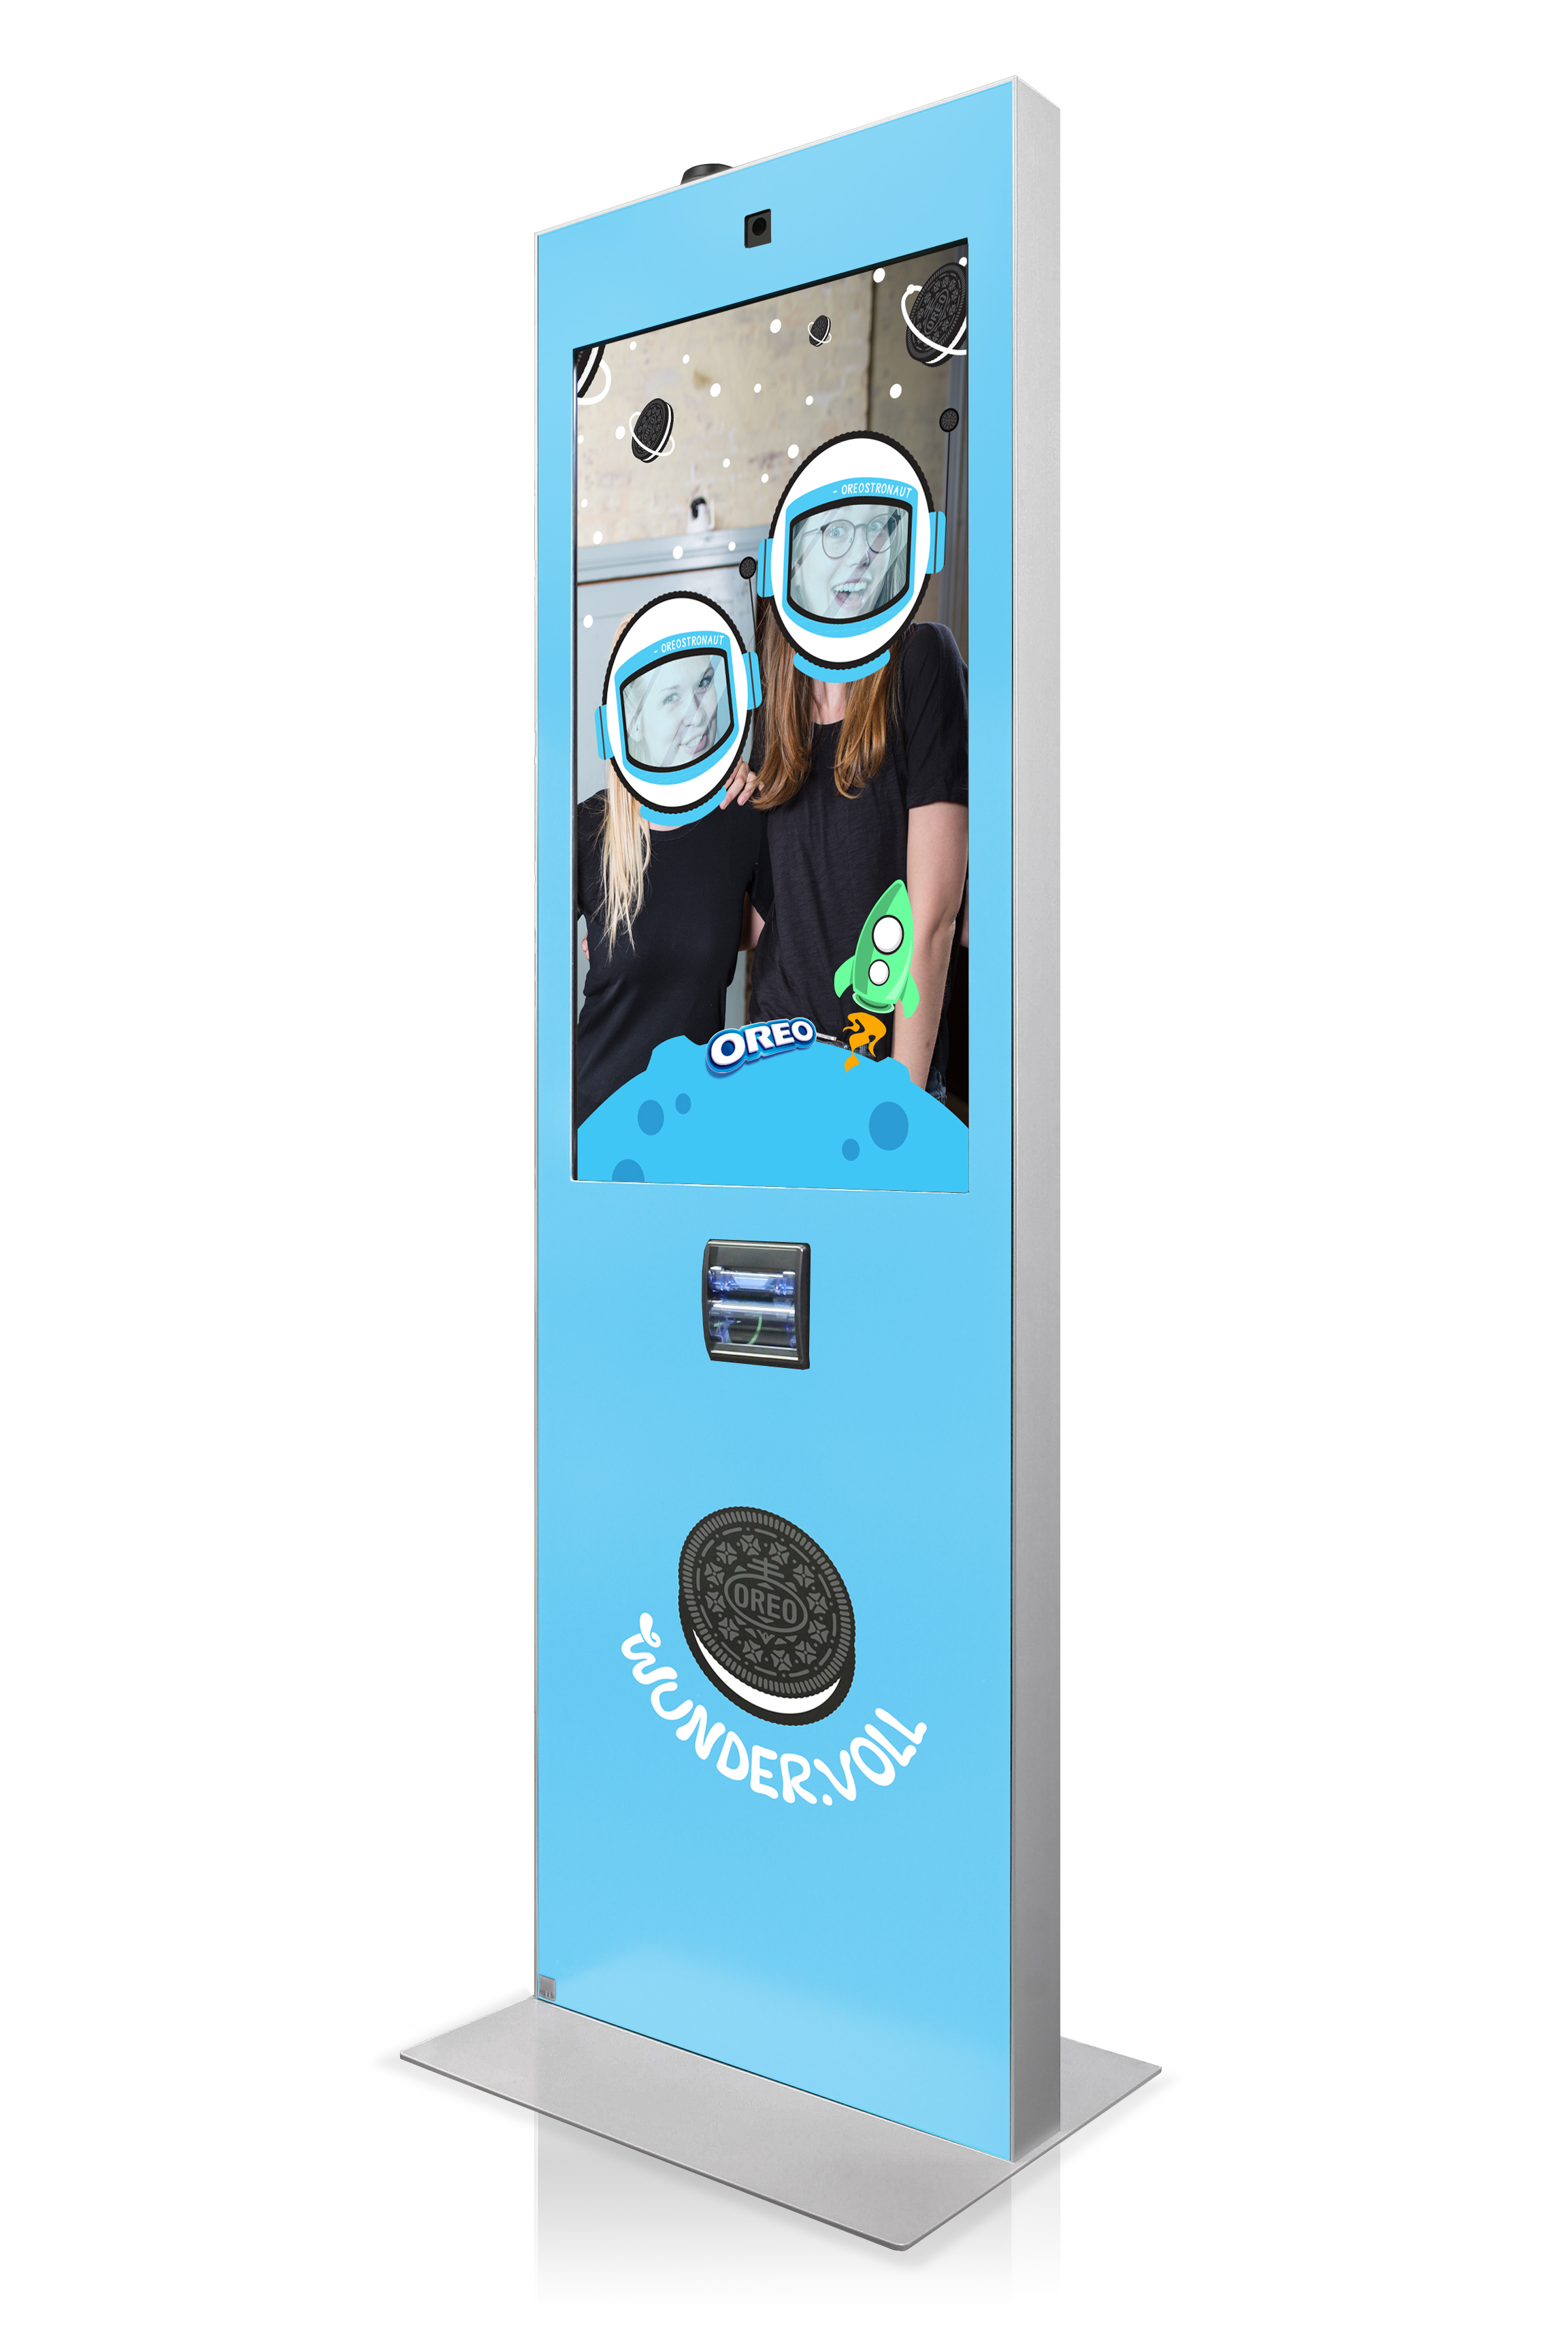 Blue Virtual Promoter showing two smiling persons with astronaut helmets on. Oreo cookies and rockets are printed on the device.